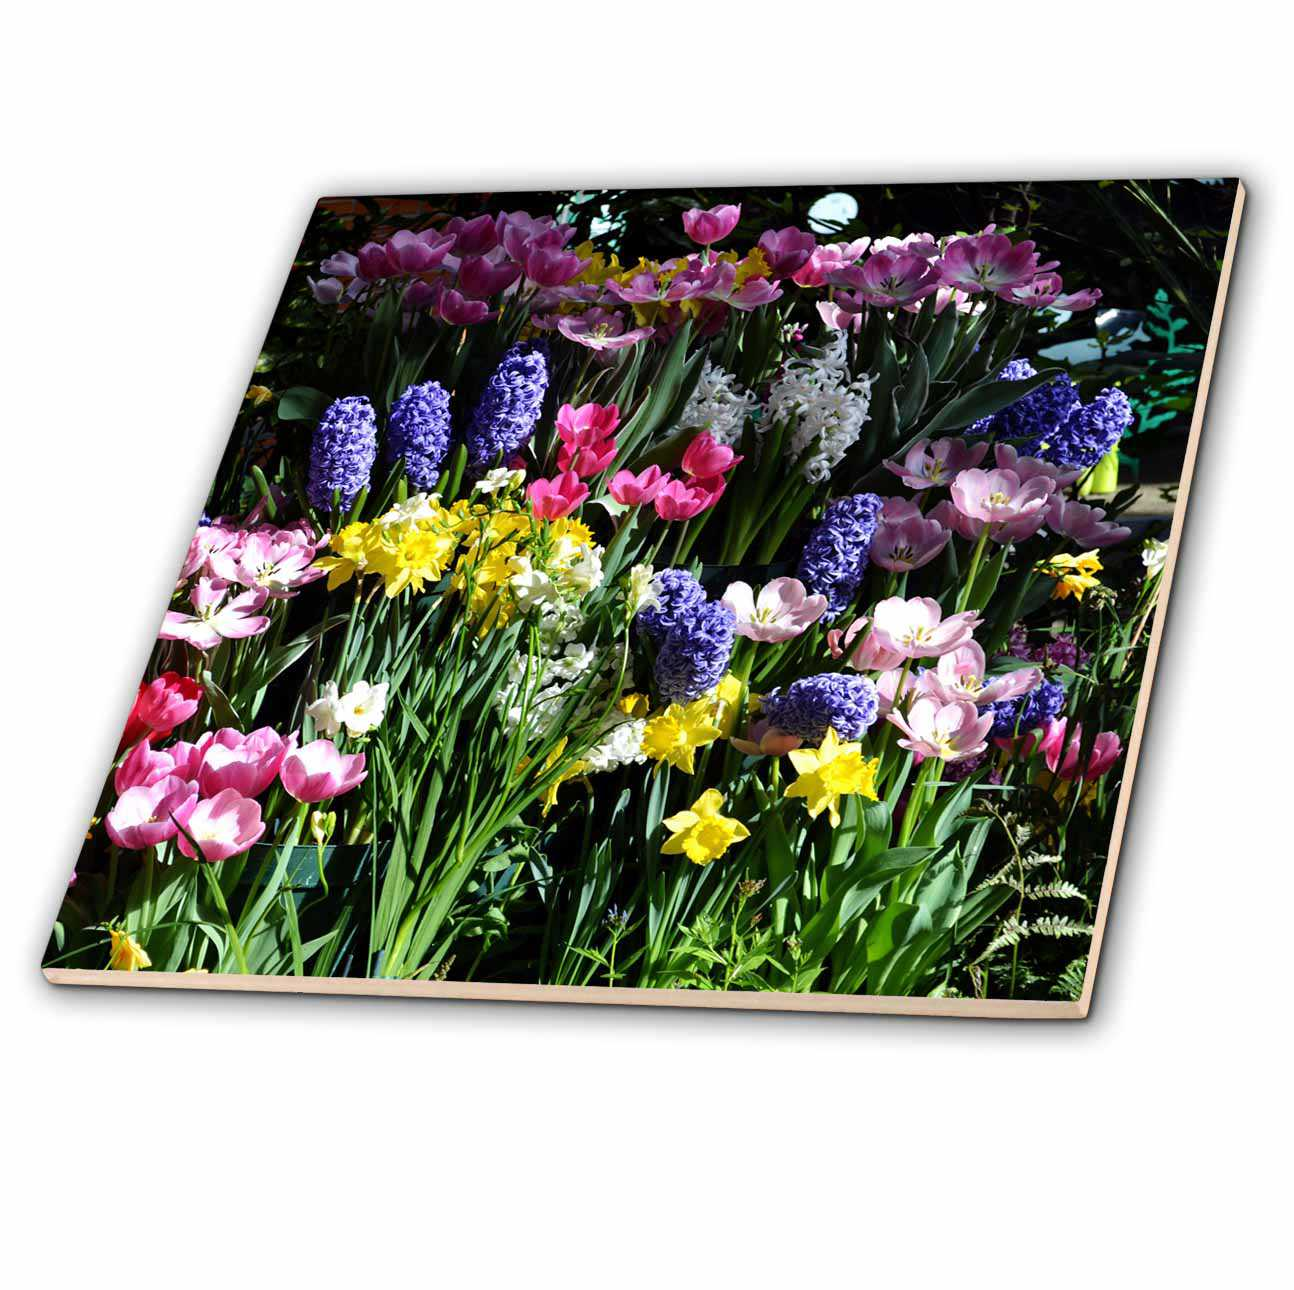 3dRose Wall of flowers - Ceramic Tile, 6-inch